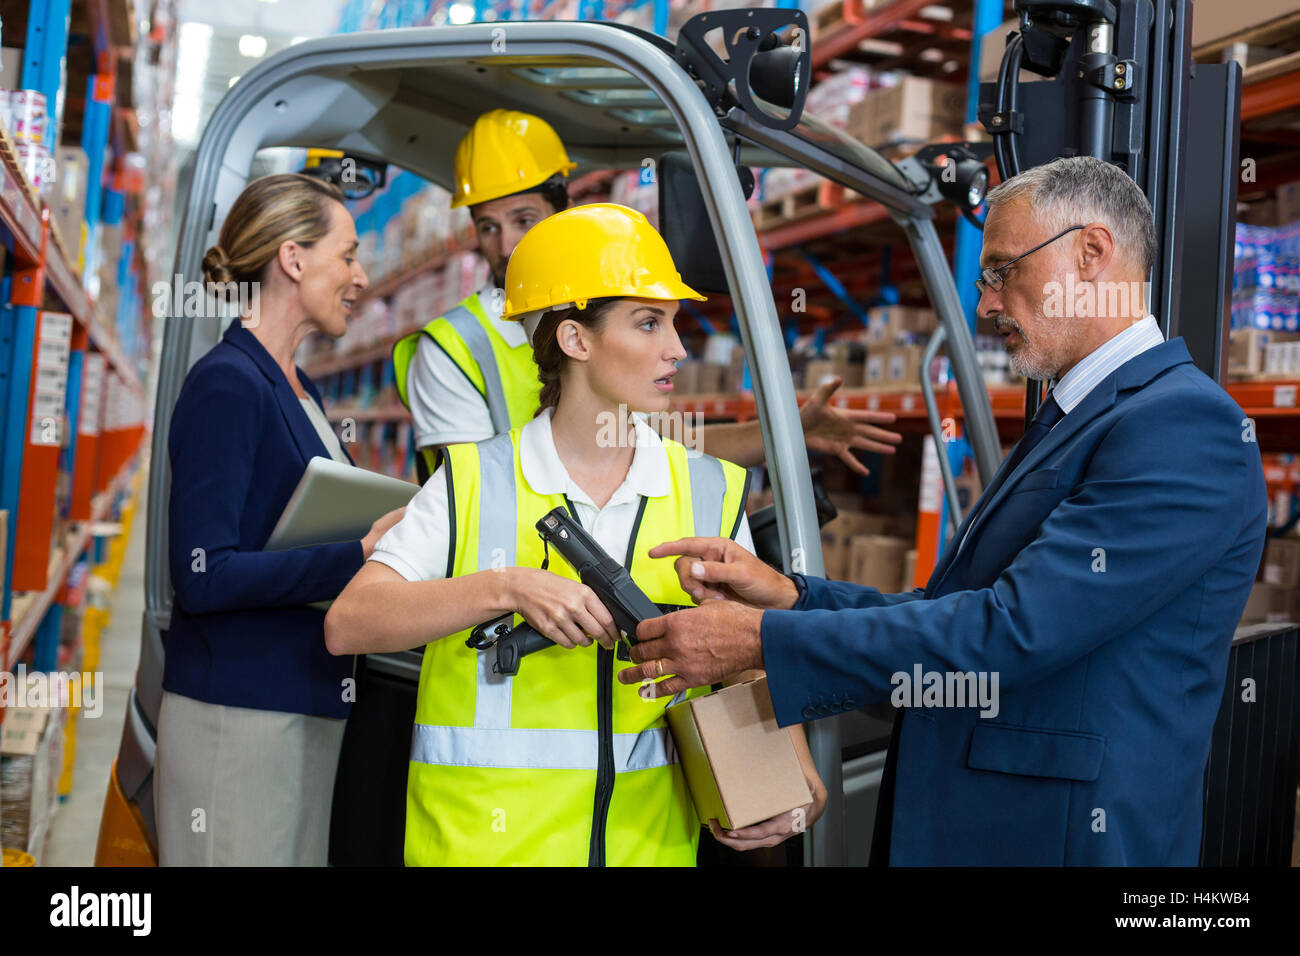 Warehouse manager and client interacting with co-workers - Stock Image